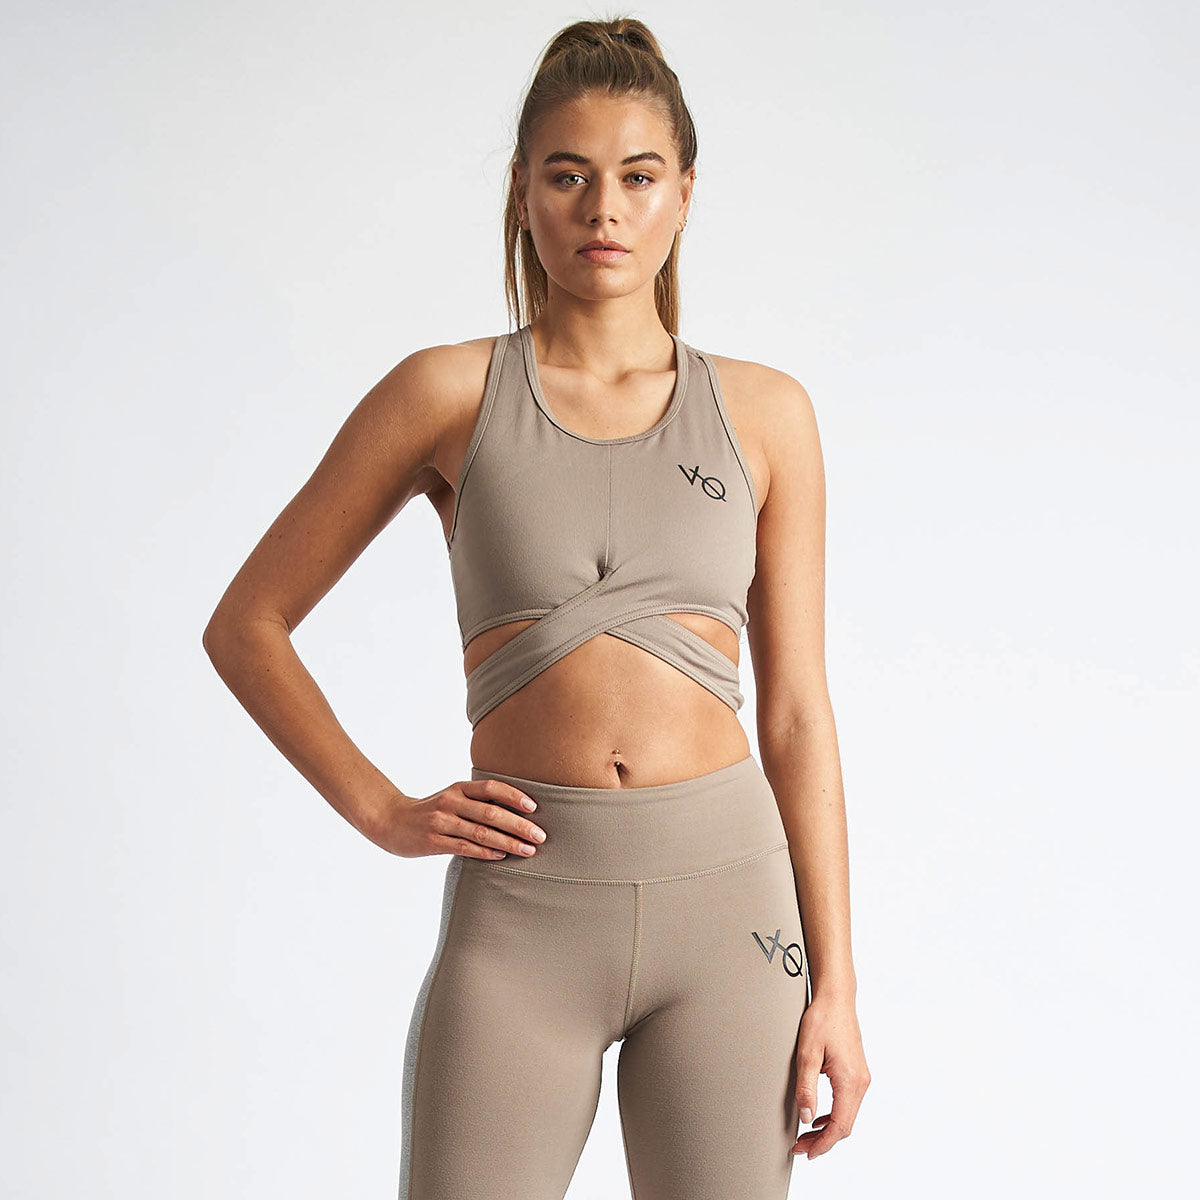 Vanquish Women's Khaki Crossover Crop Top